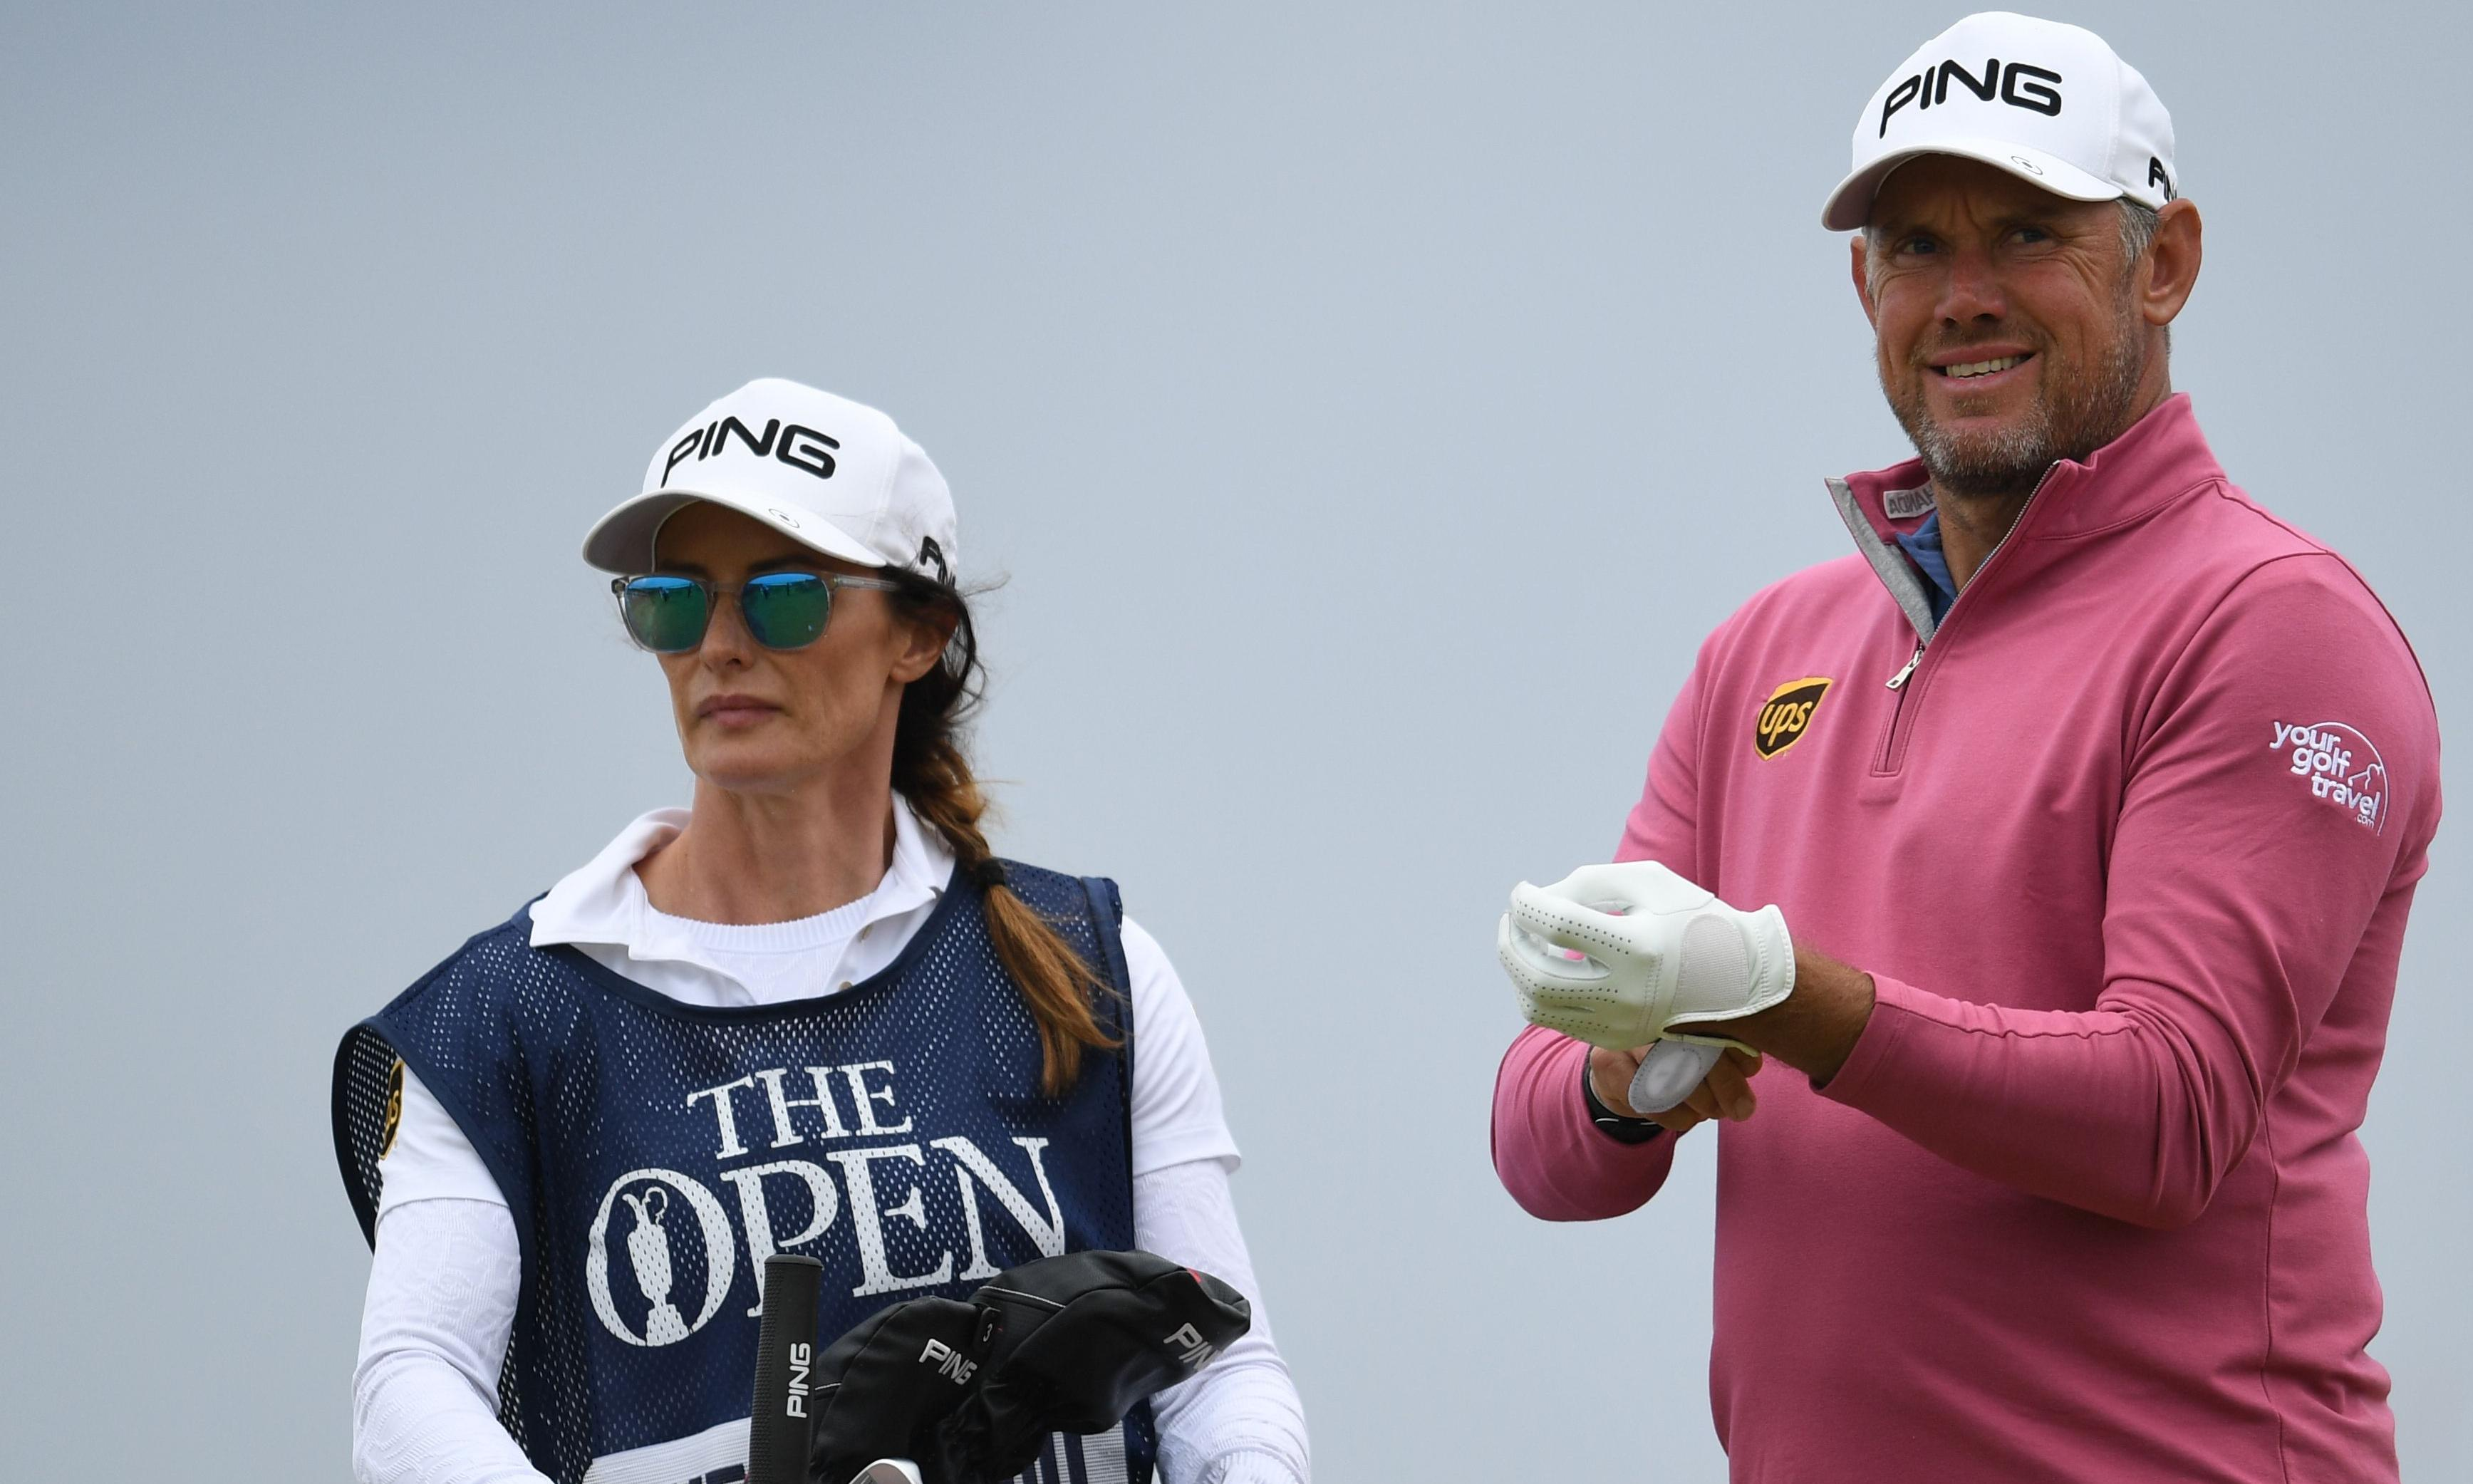 Lee Westwood's girlfriend and caddie Helen Storey proves a major boost